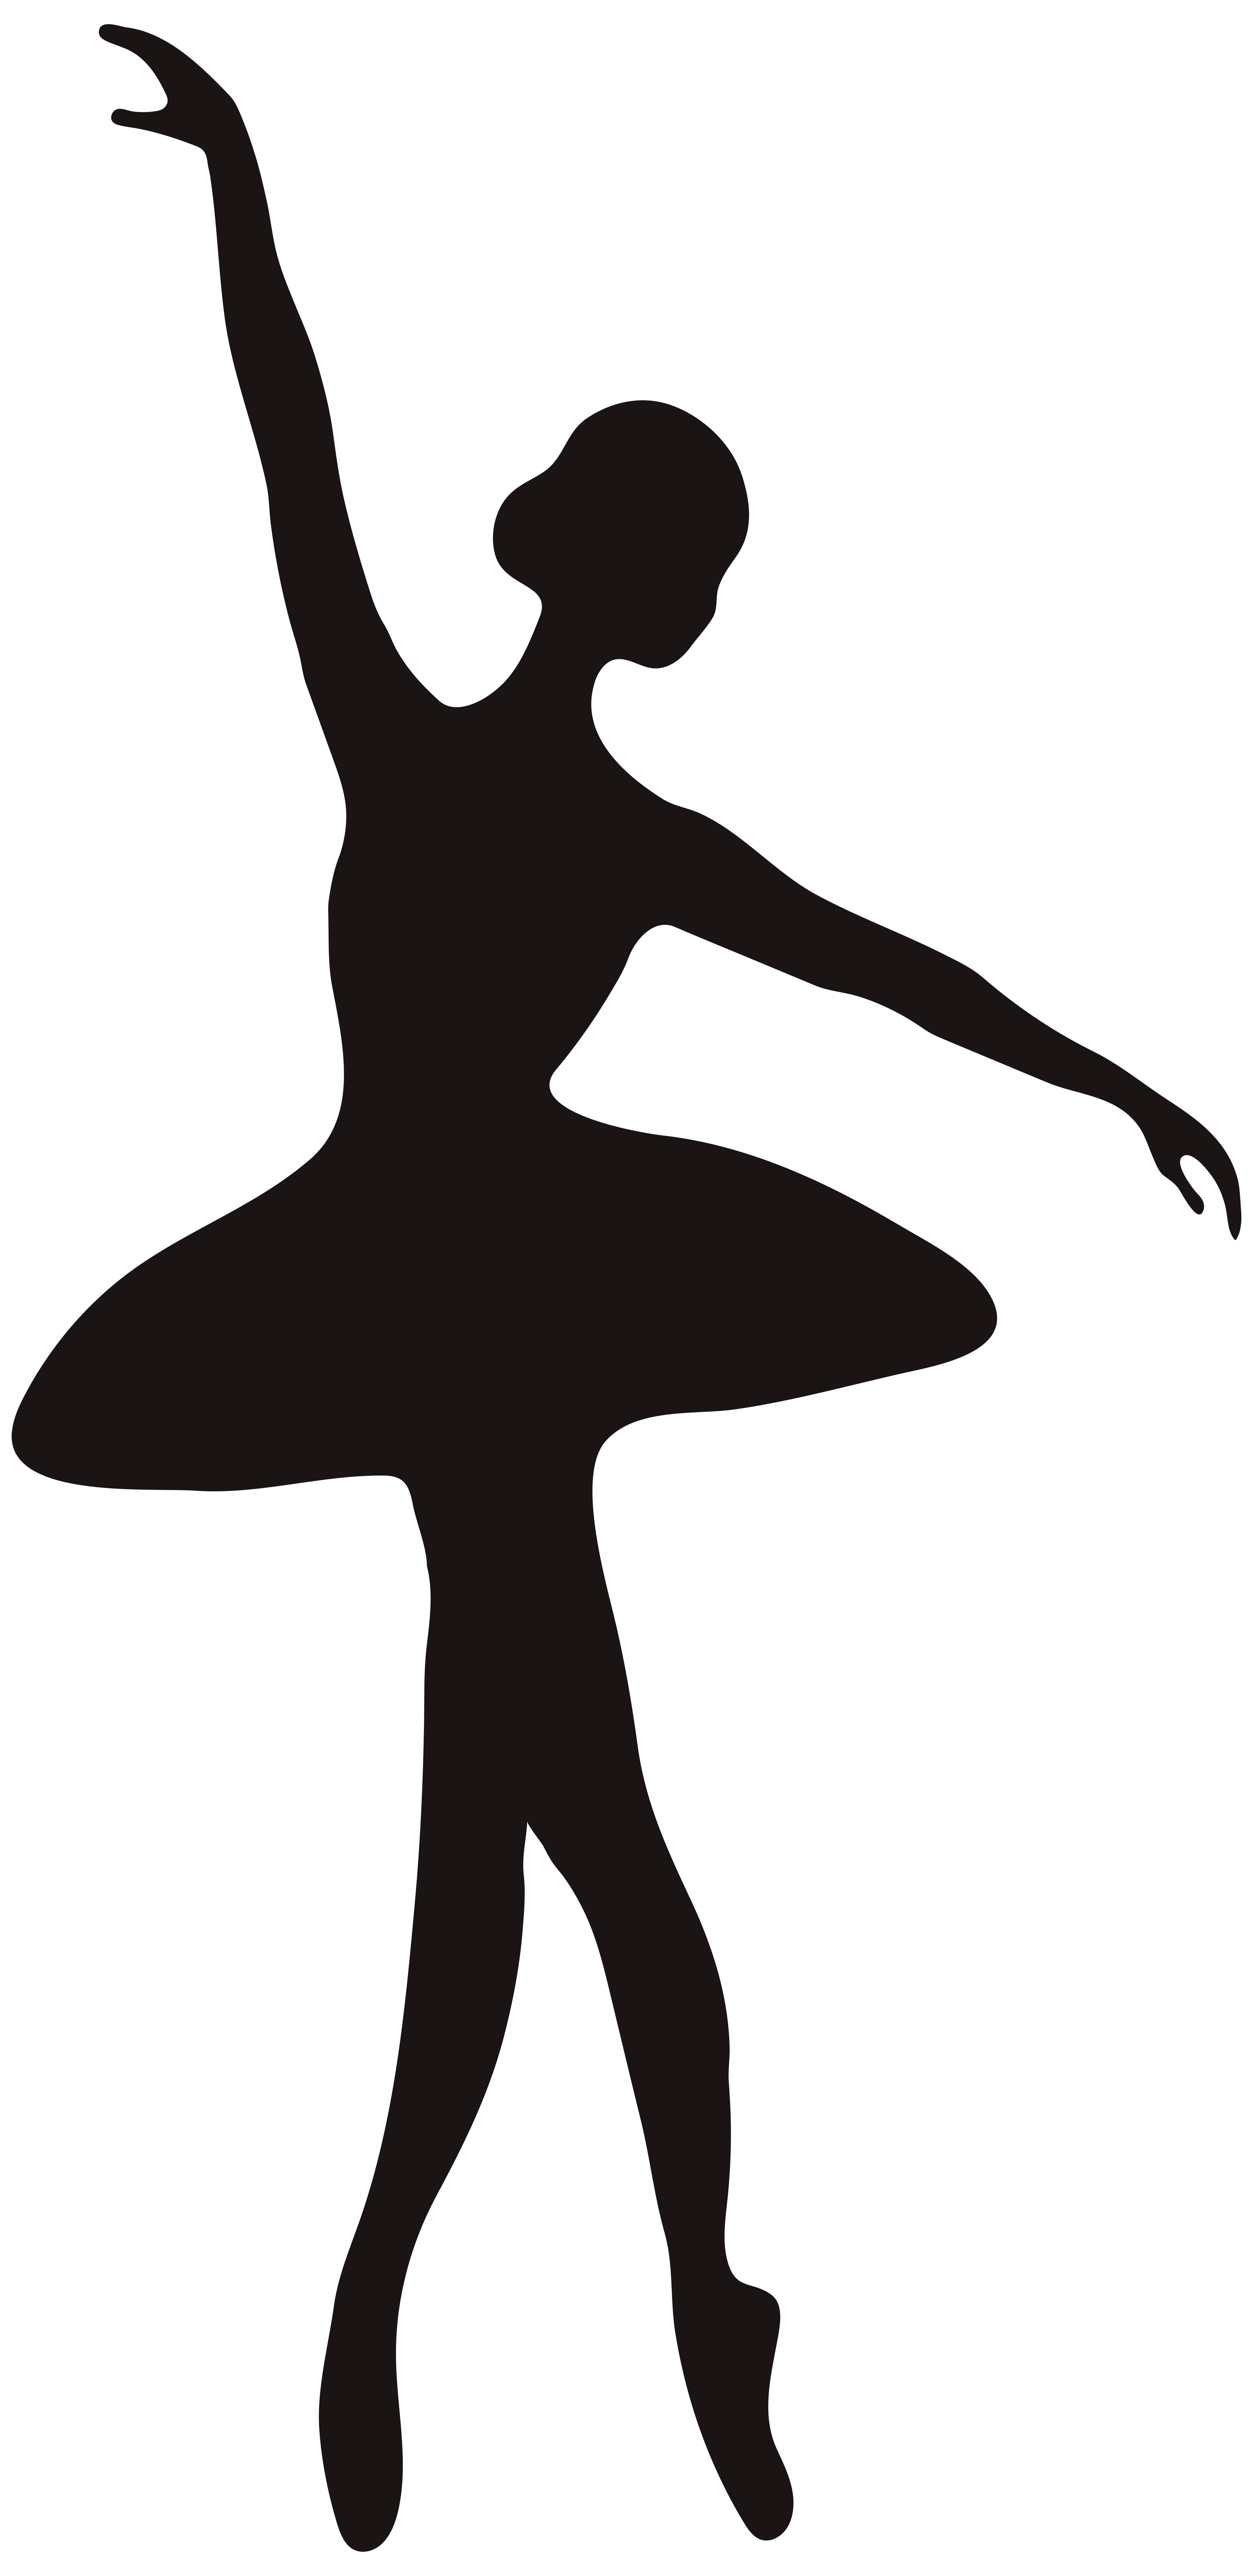 Ballerina Silhouette PNG Clip Art Image.